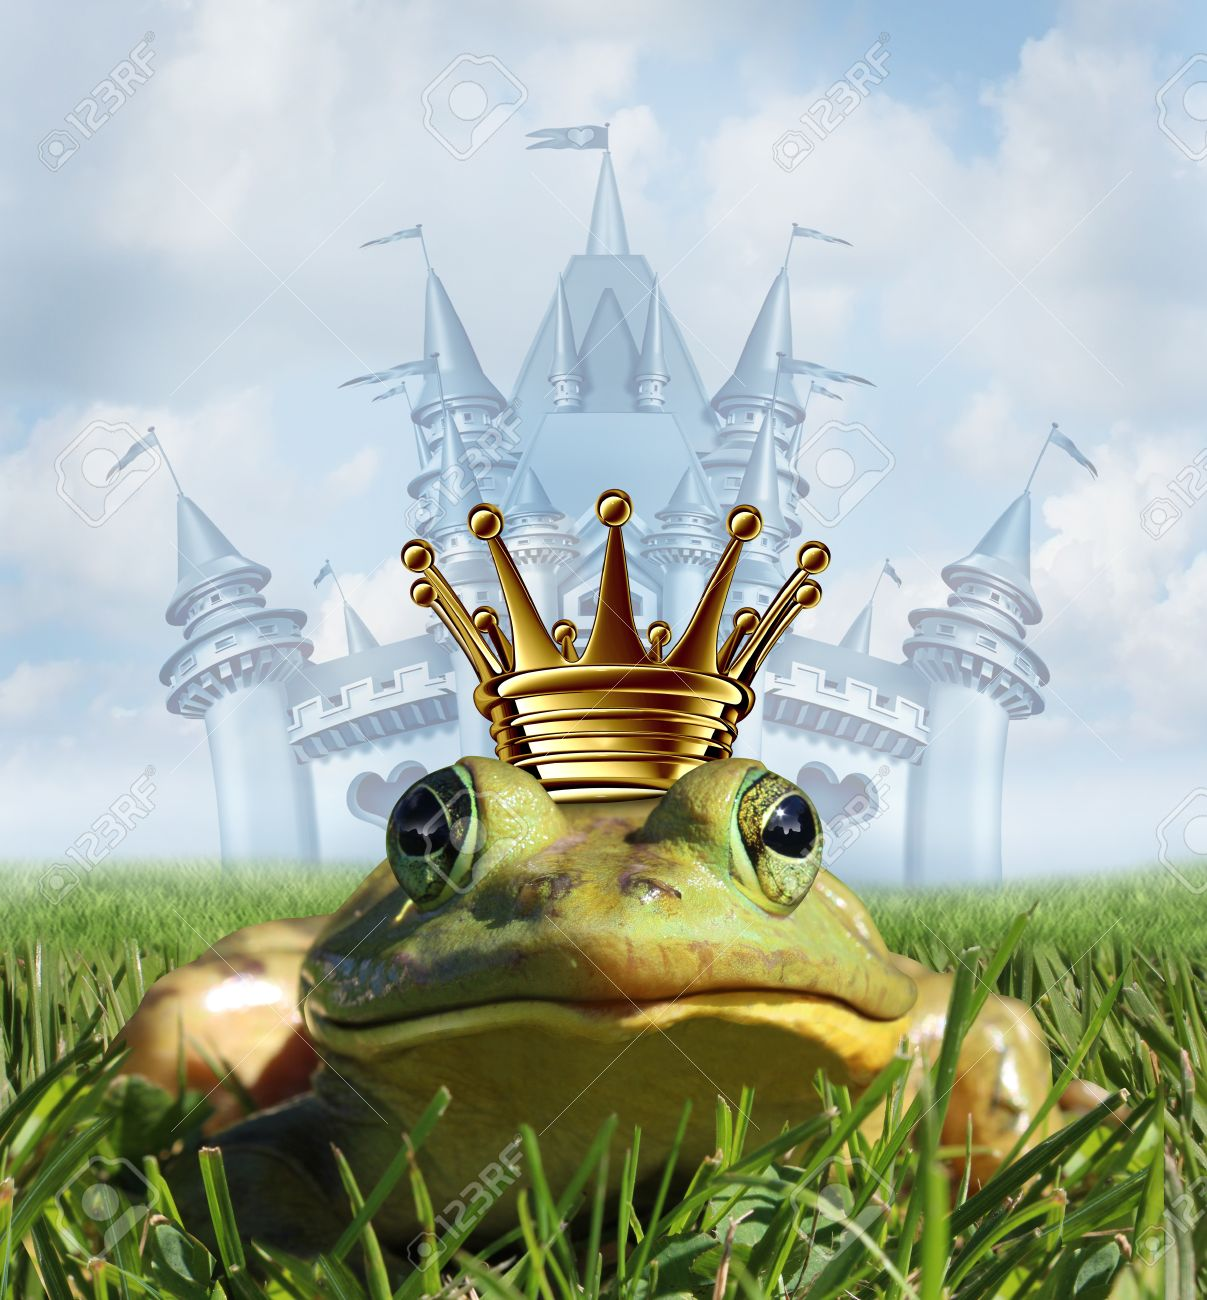 princess and the frog castle